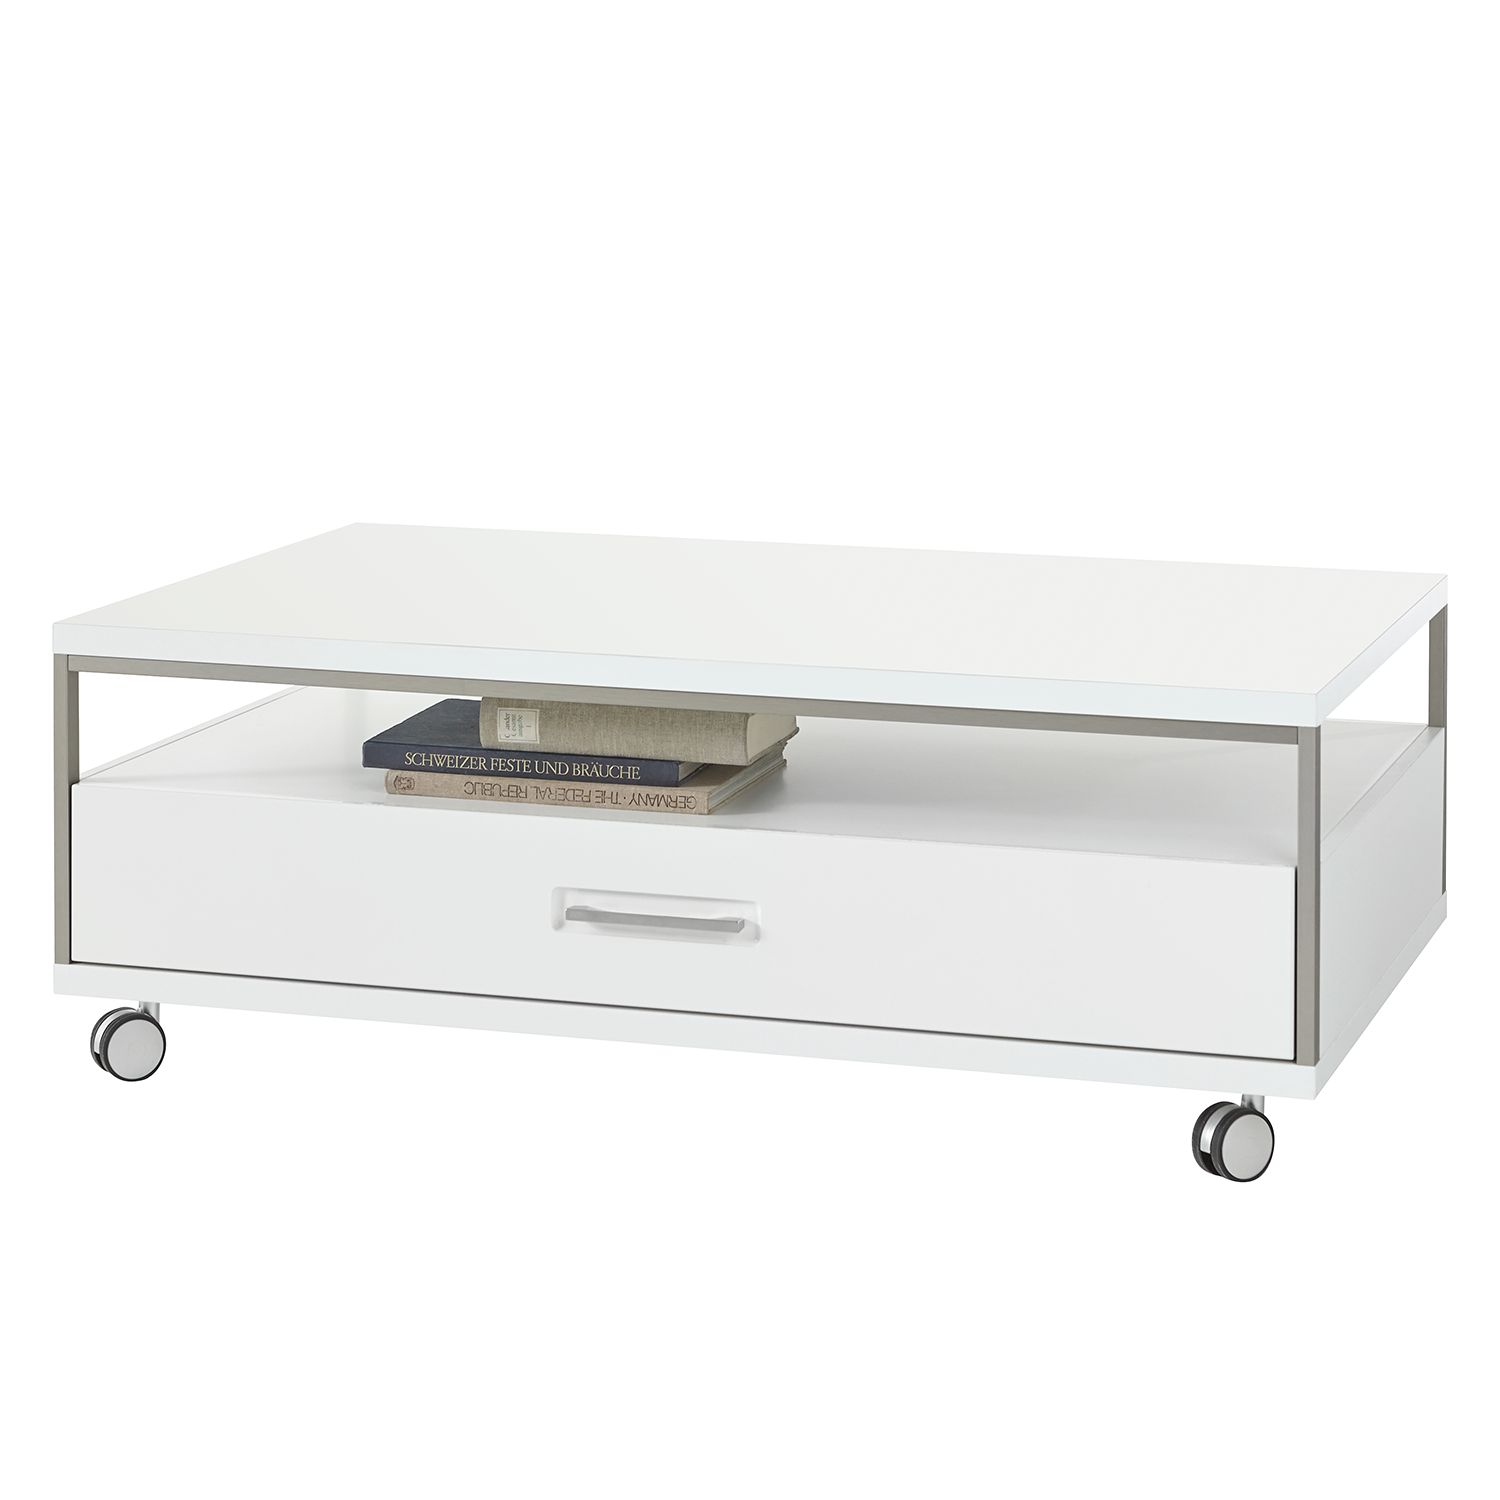 Table basse Kushiro - Blanc, loftscape